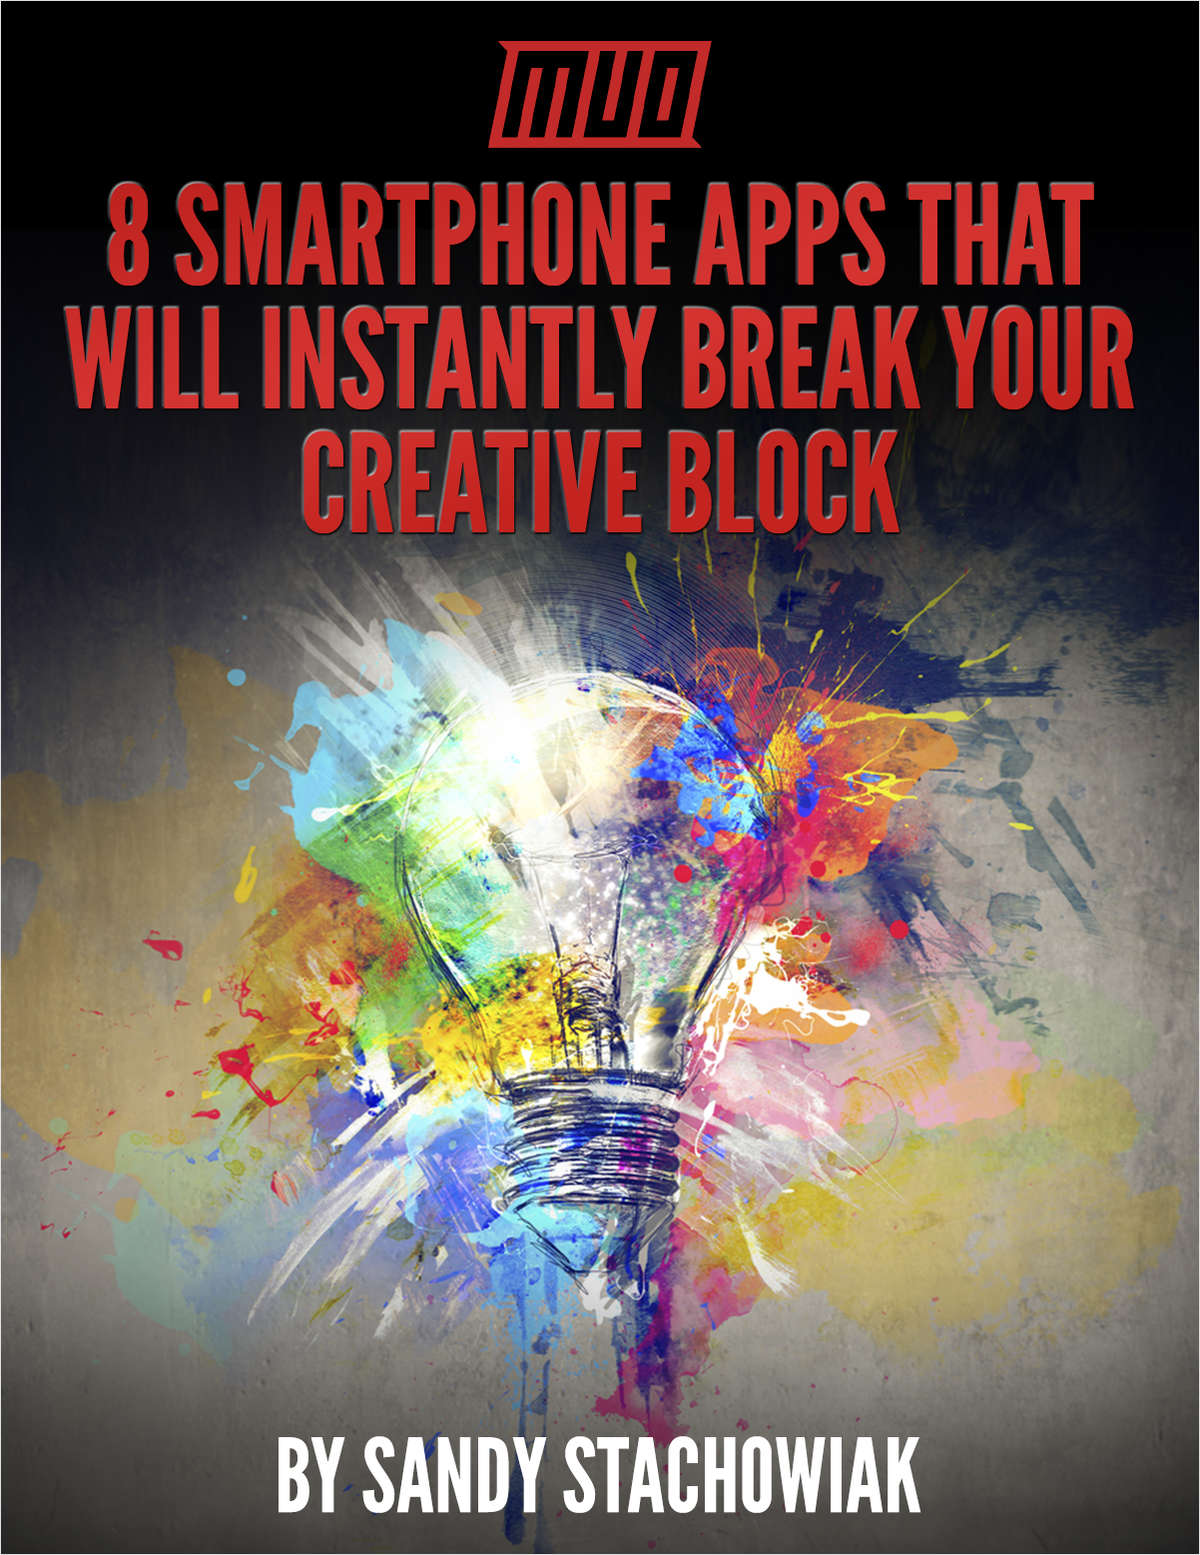 8 Smartphone Apps That Will Instantly Break Your Creative Block